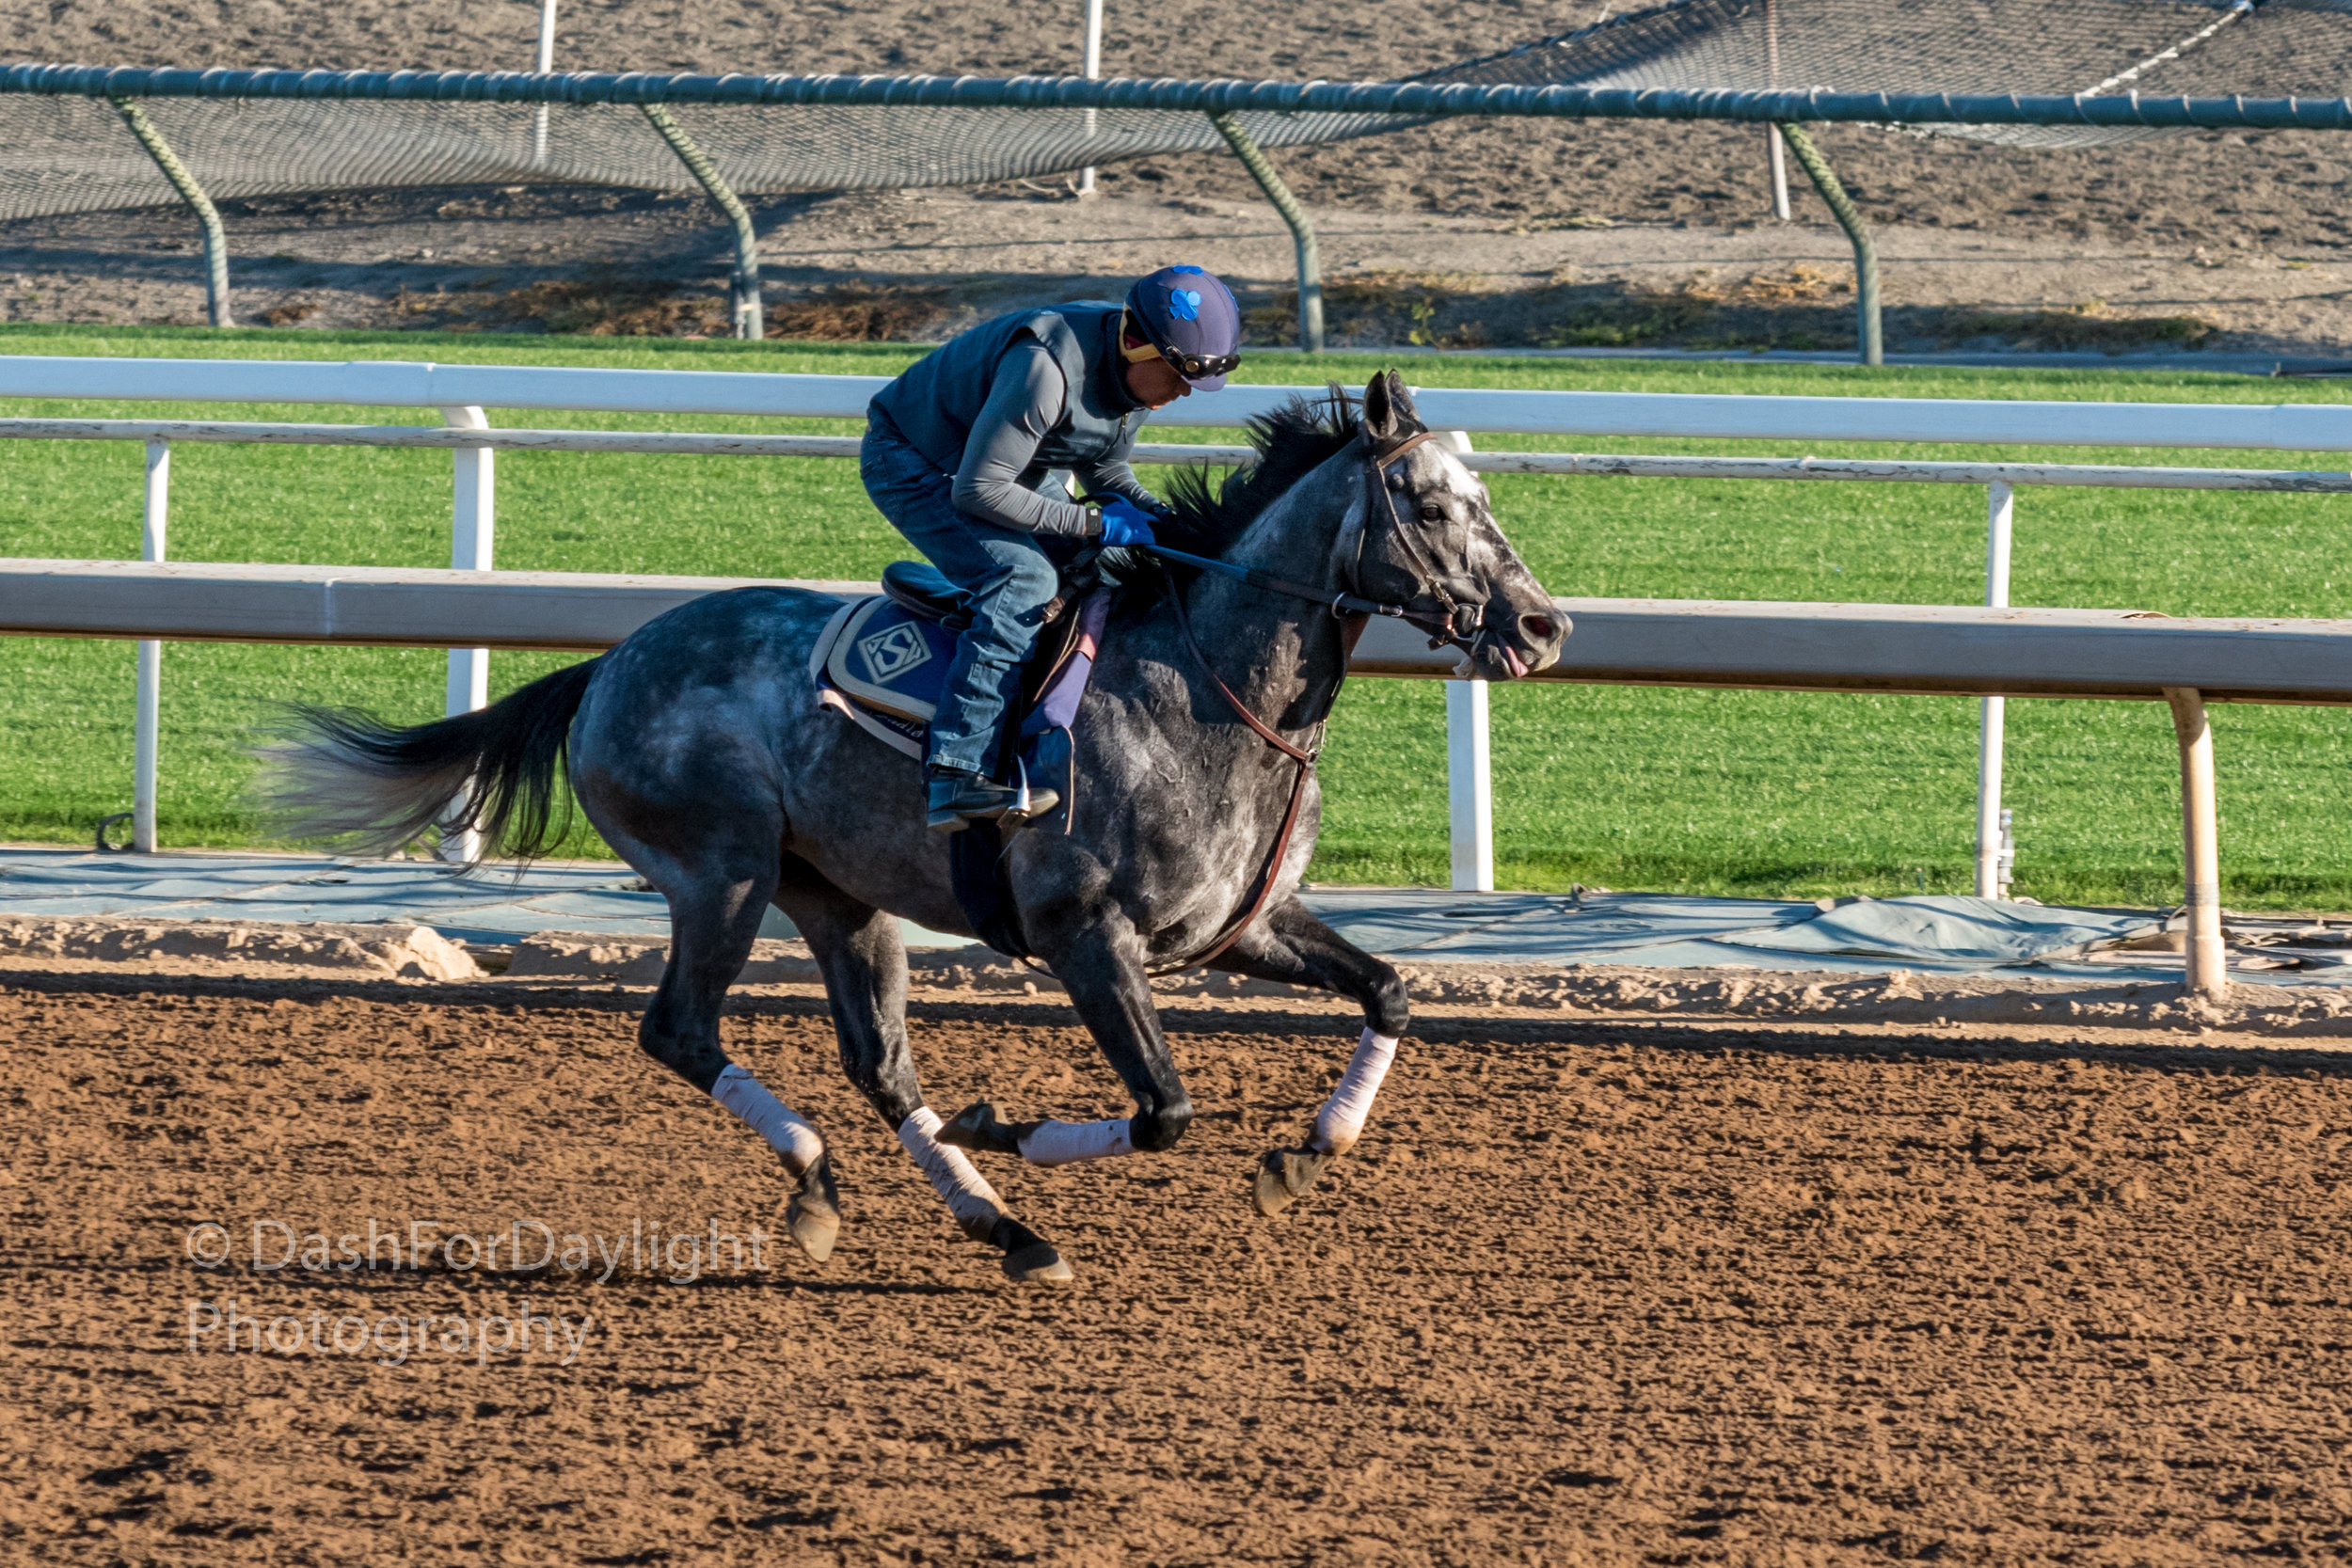 DSC_0290 Grey Working at Santa Anita